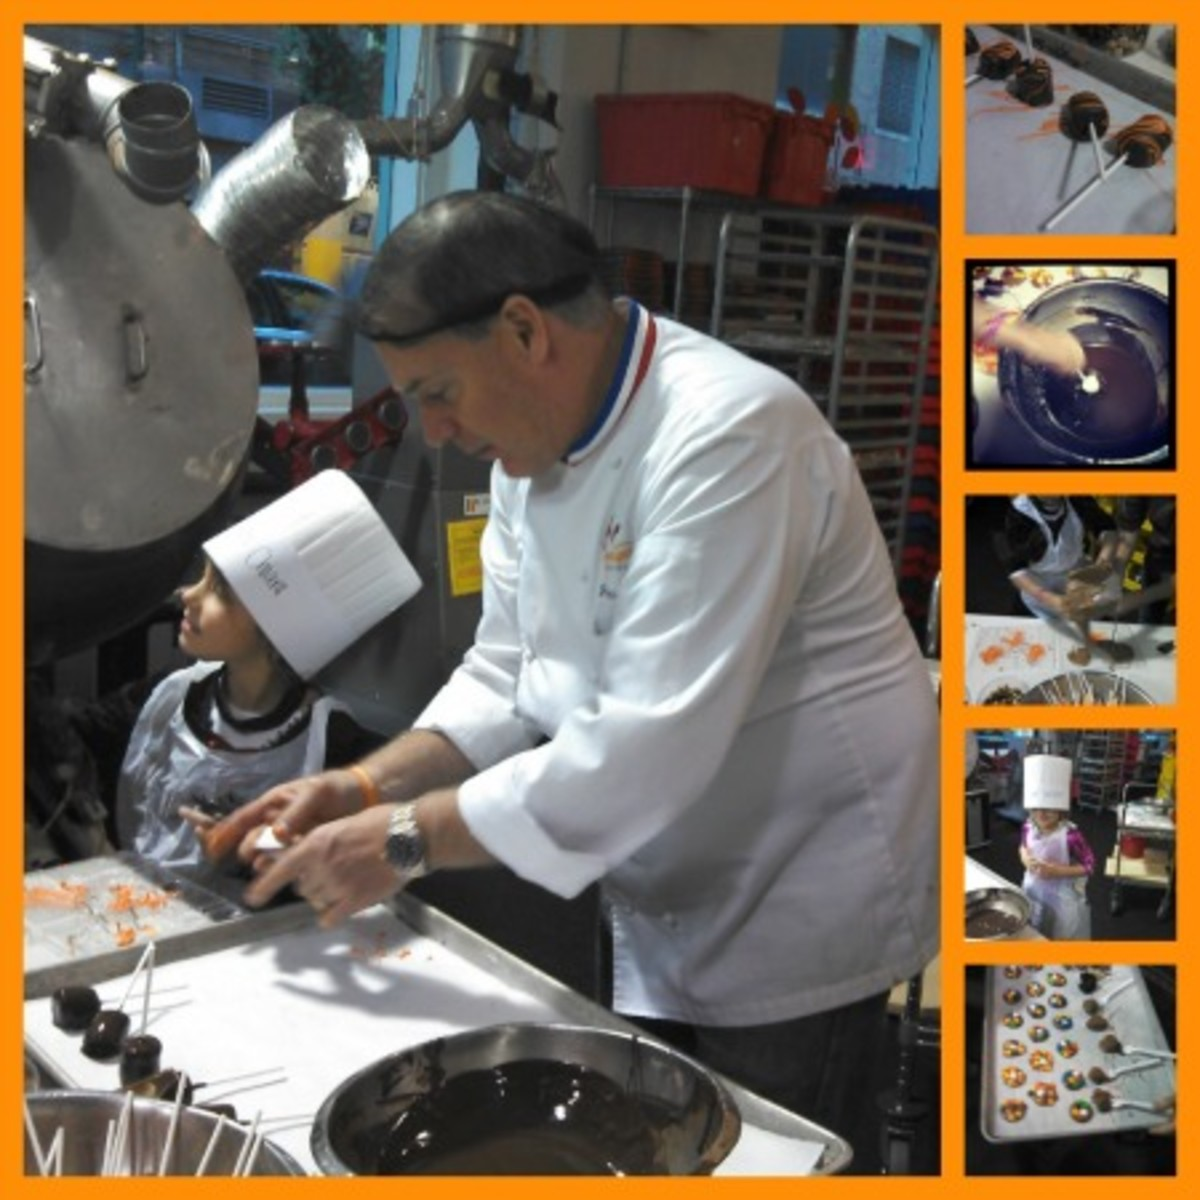 jacques torres Collage